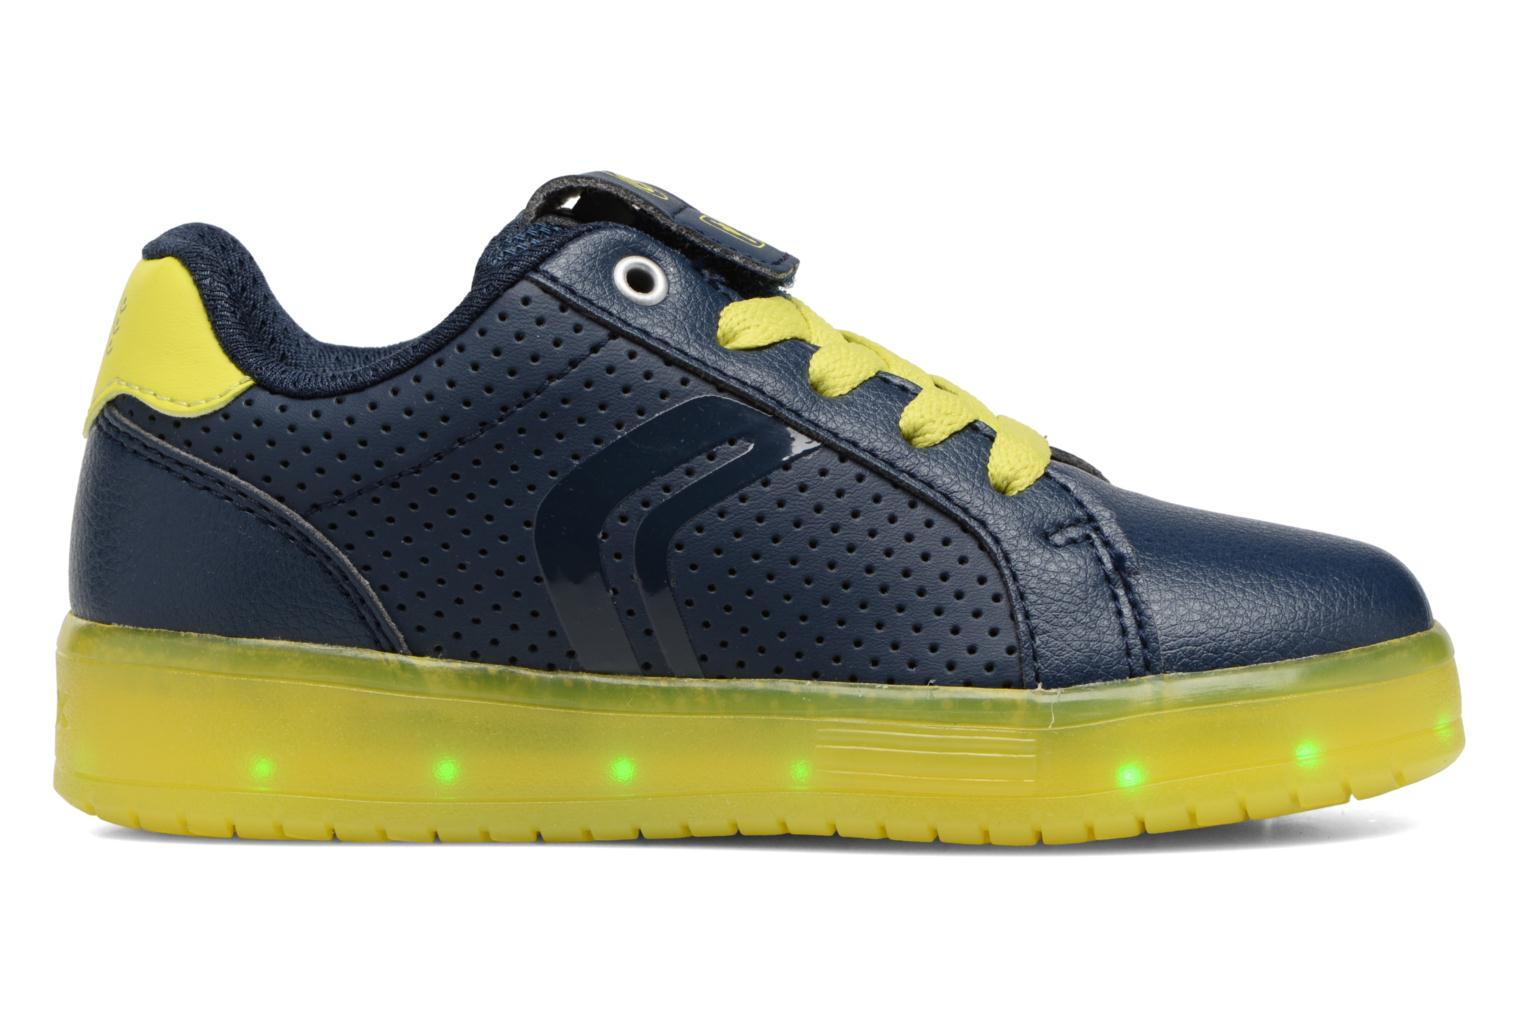 J Kommodor B.B J745PB Navy/Lime